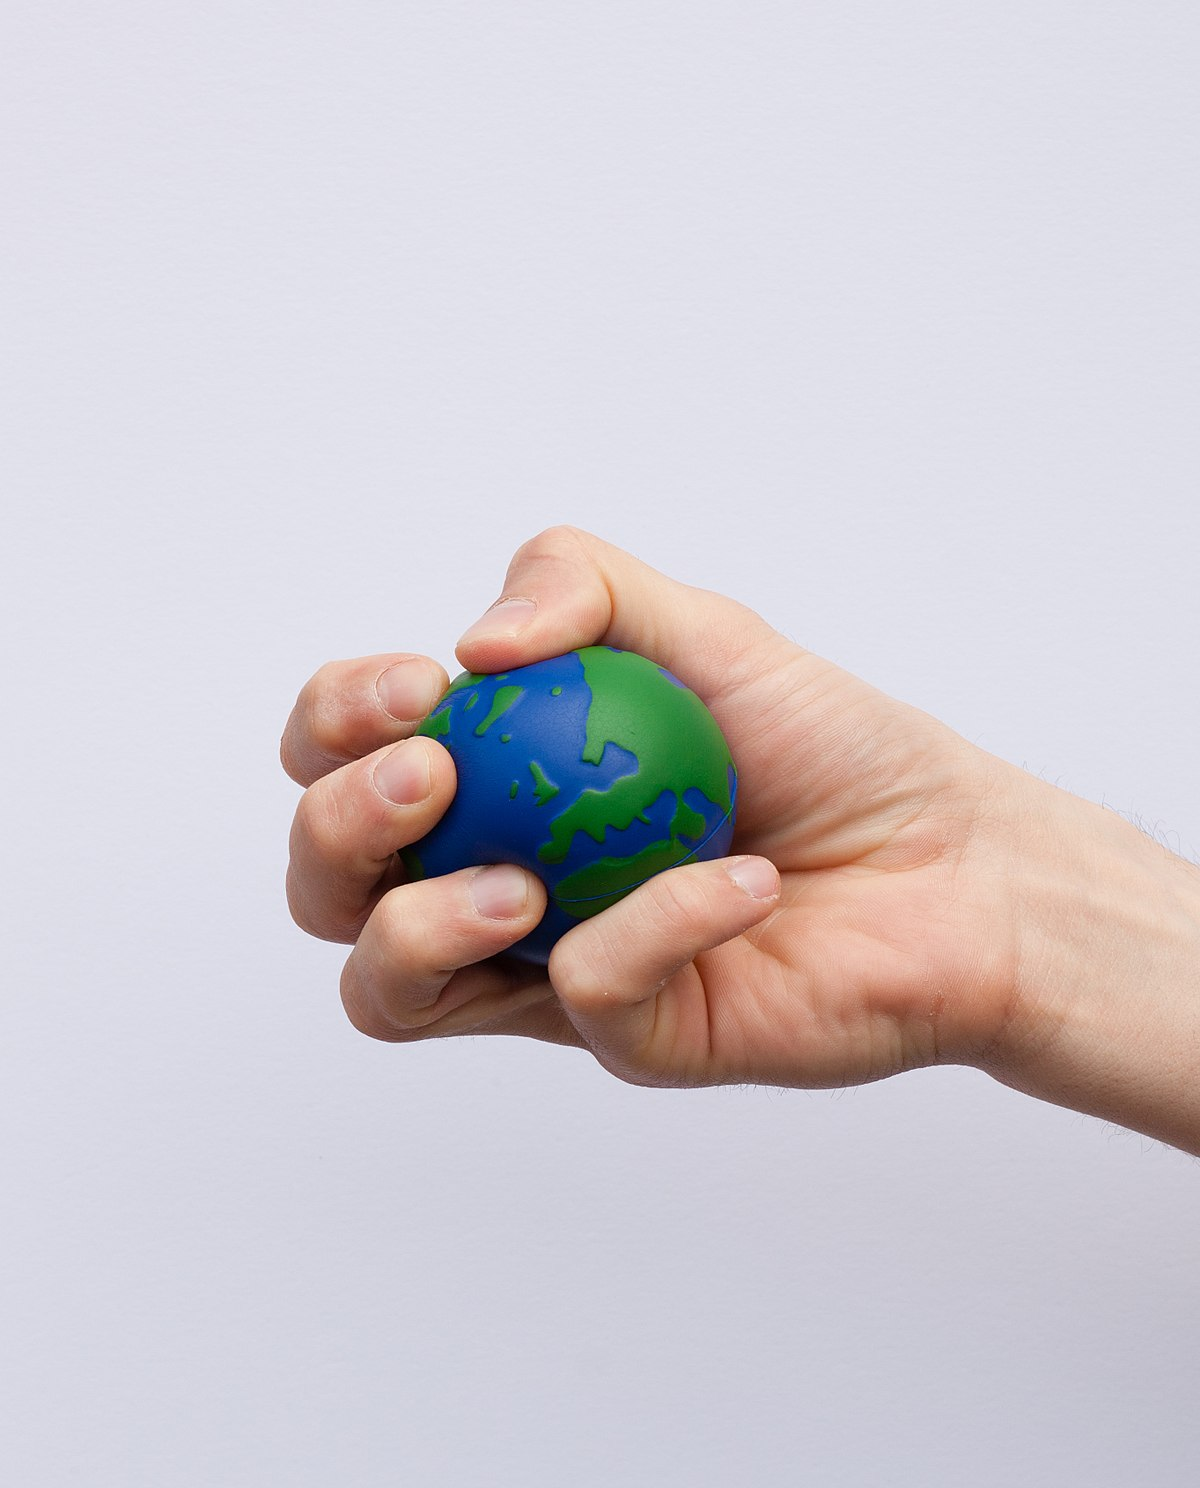 1200px-Earth_globe_stress_ball.jpg